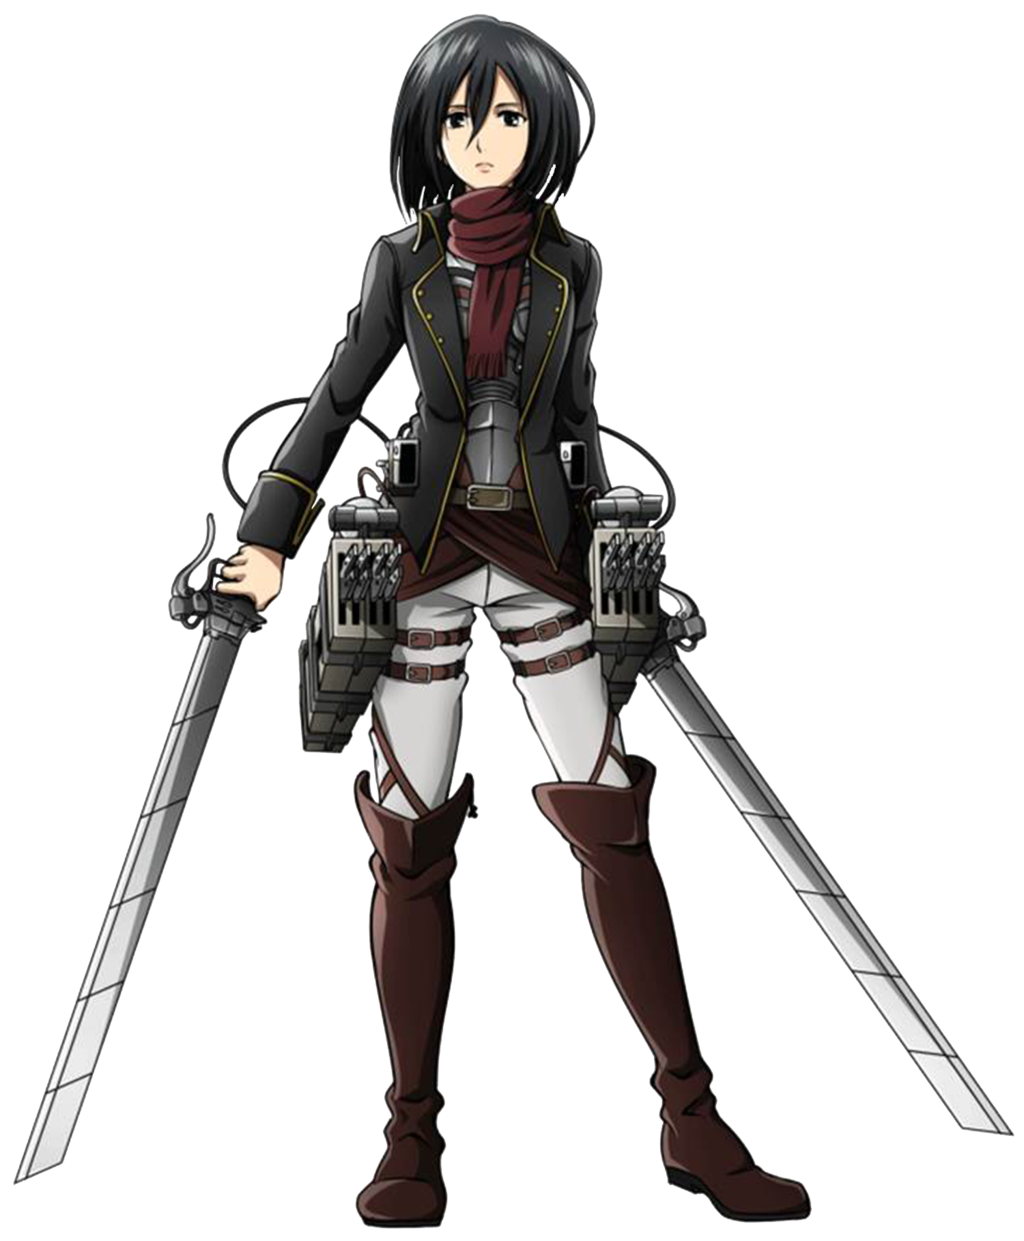 mikasa Google Search Attack on titan anime, Attack on